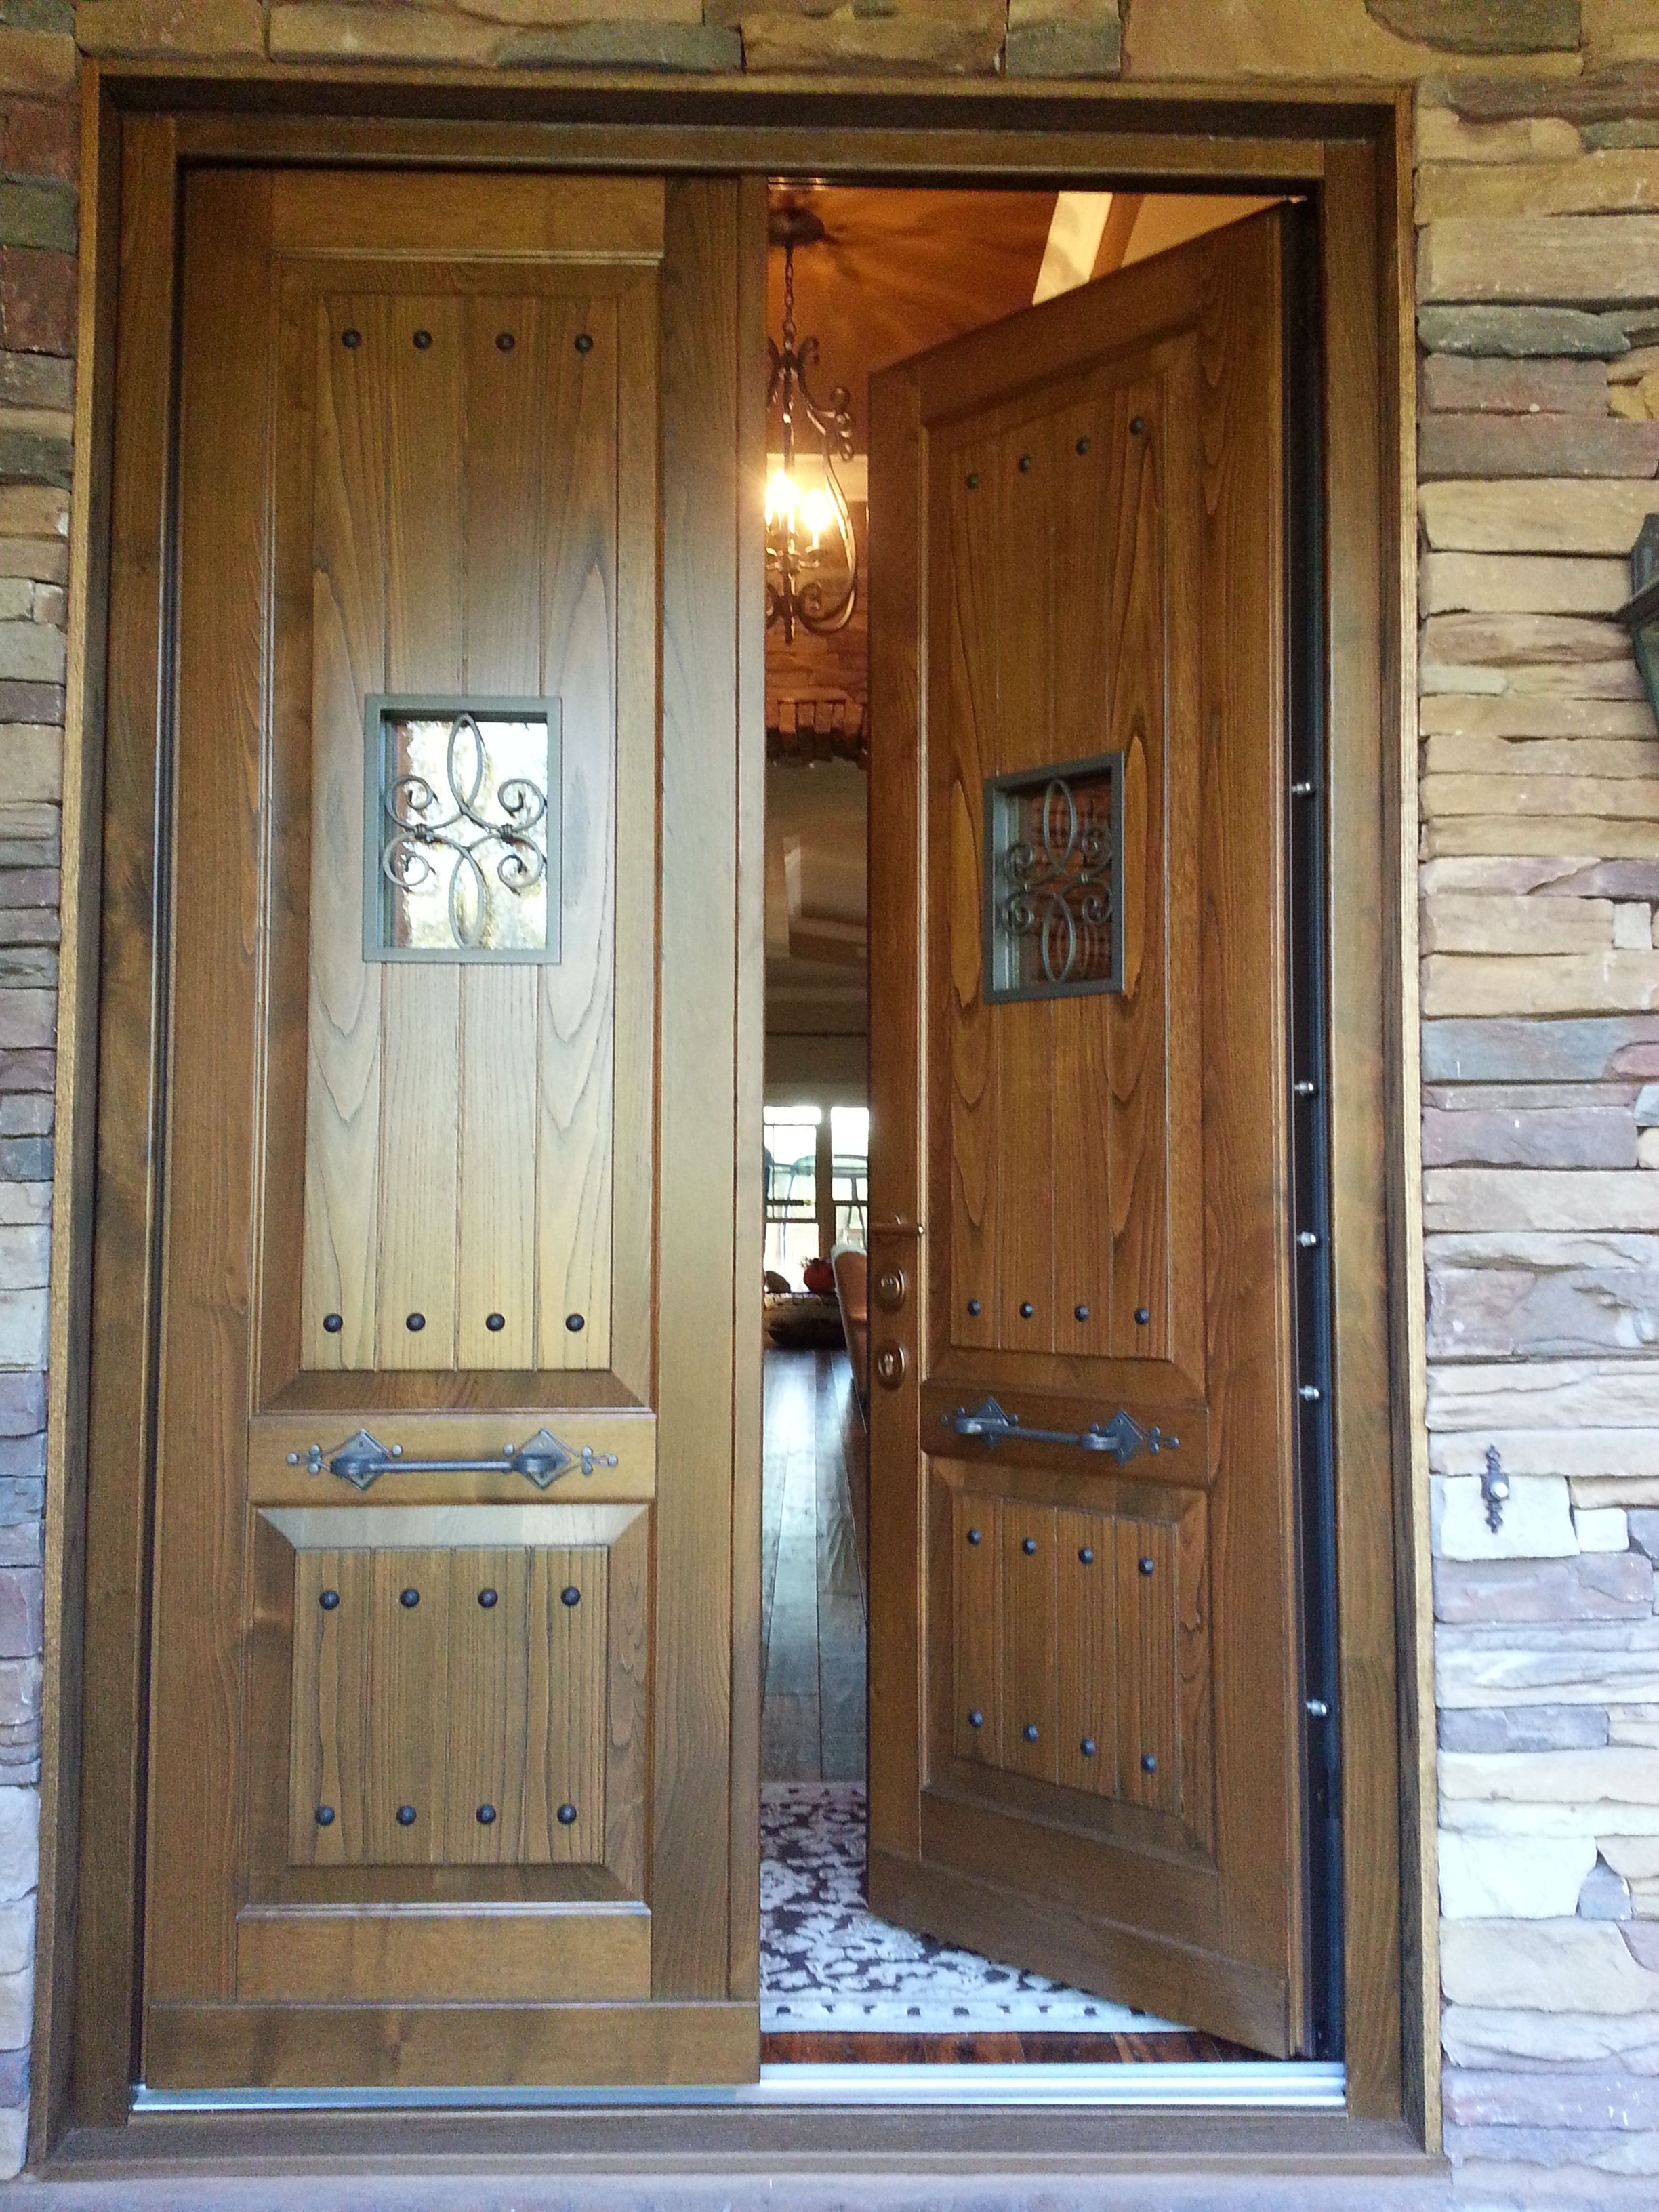 Steel Security Door, Hardwood Panel. Multi Point Locking System